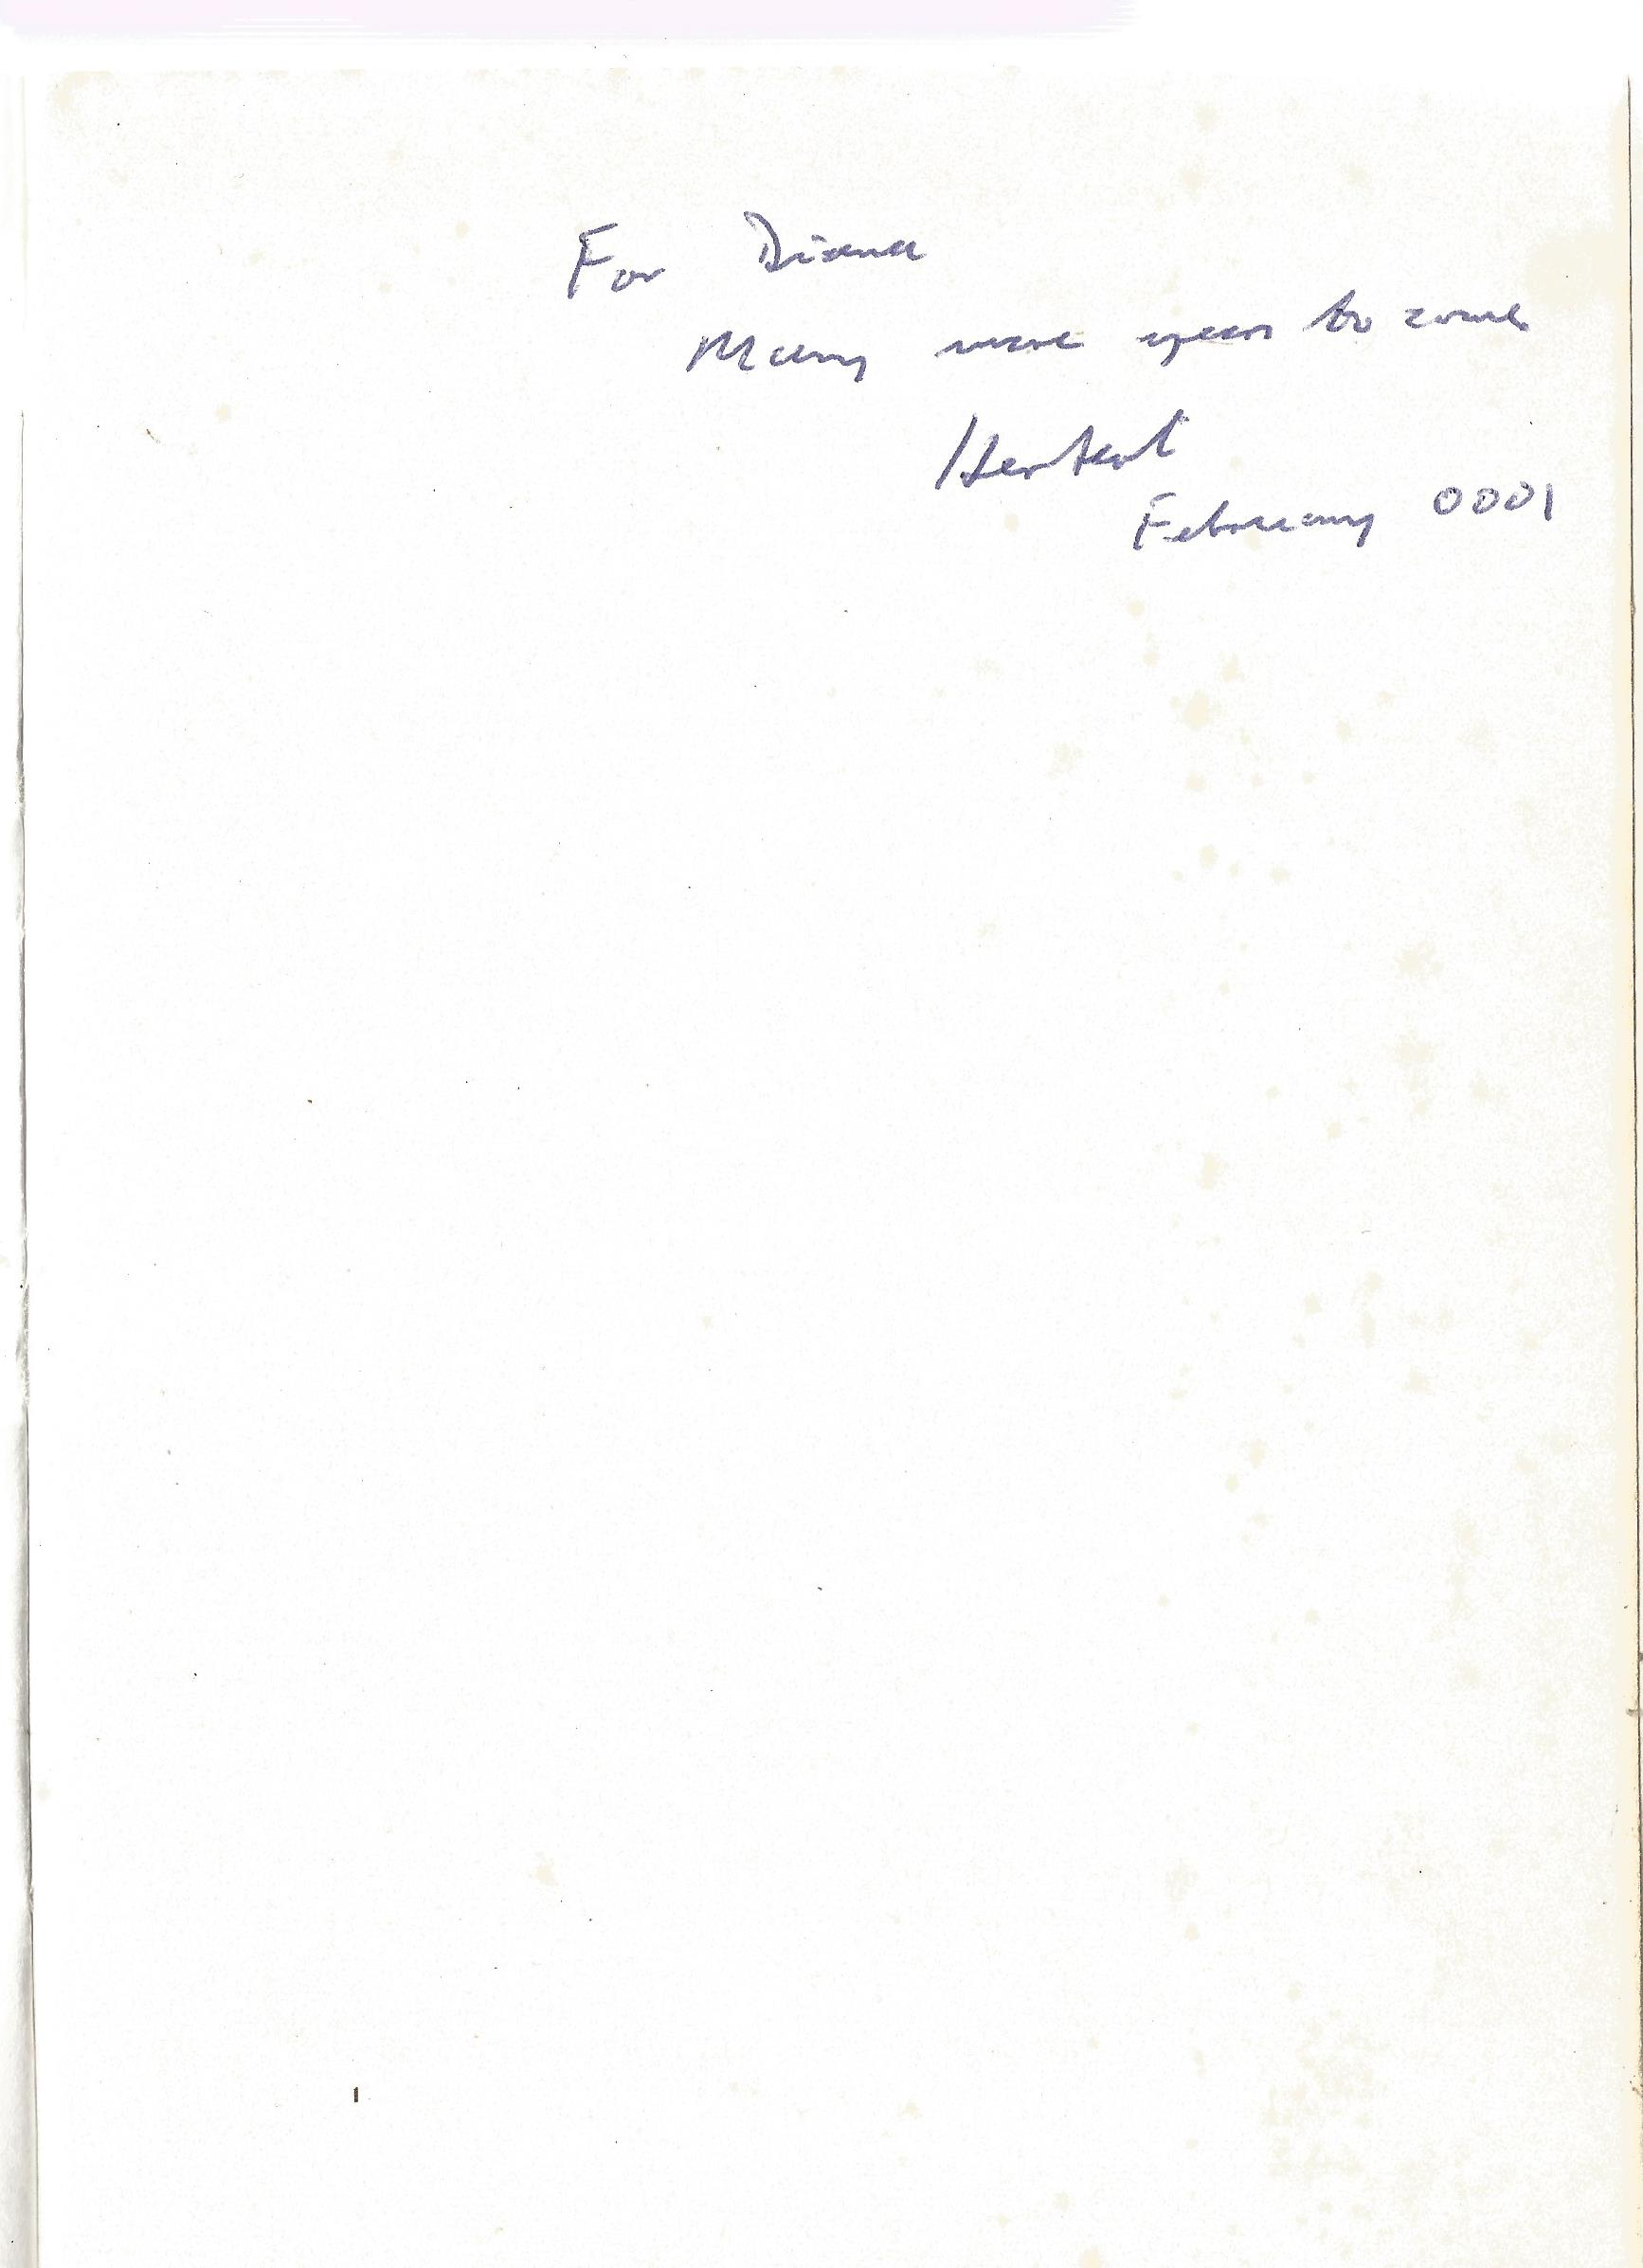 Herbert Ellis, MD Paperback Book Why not Live a little Longer? Signed by the Author on the First - Image 2 of 3